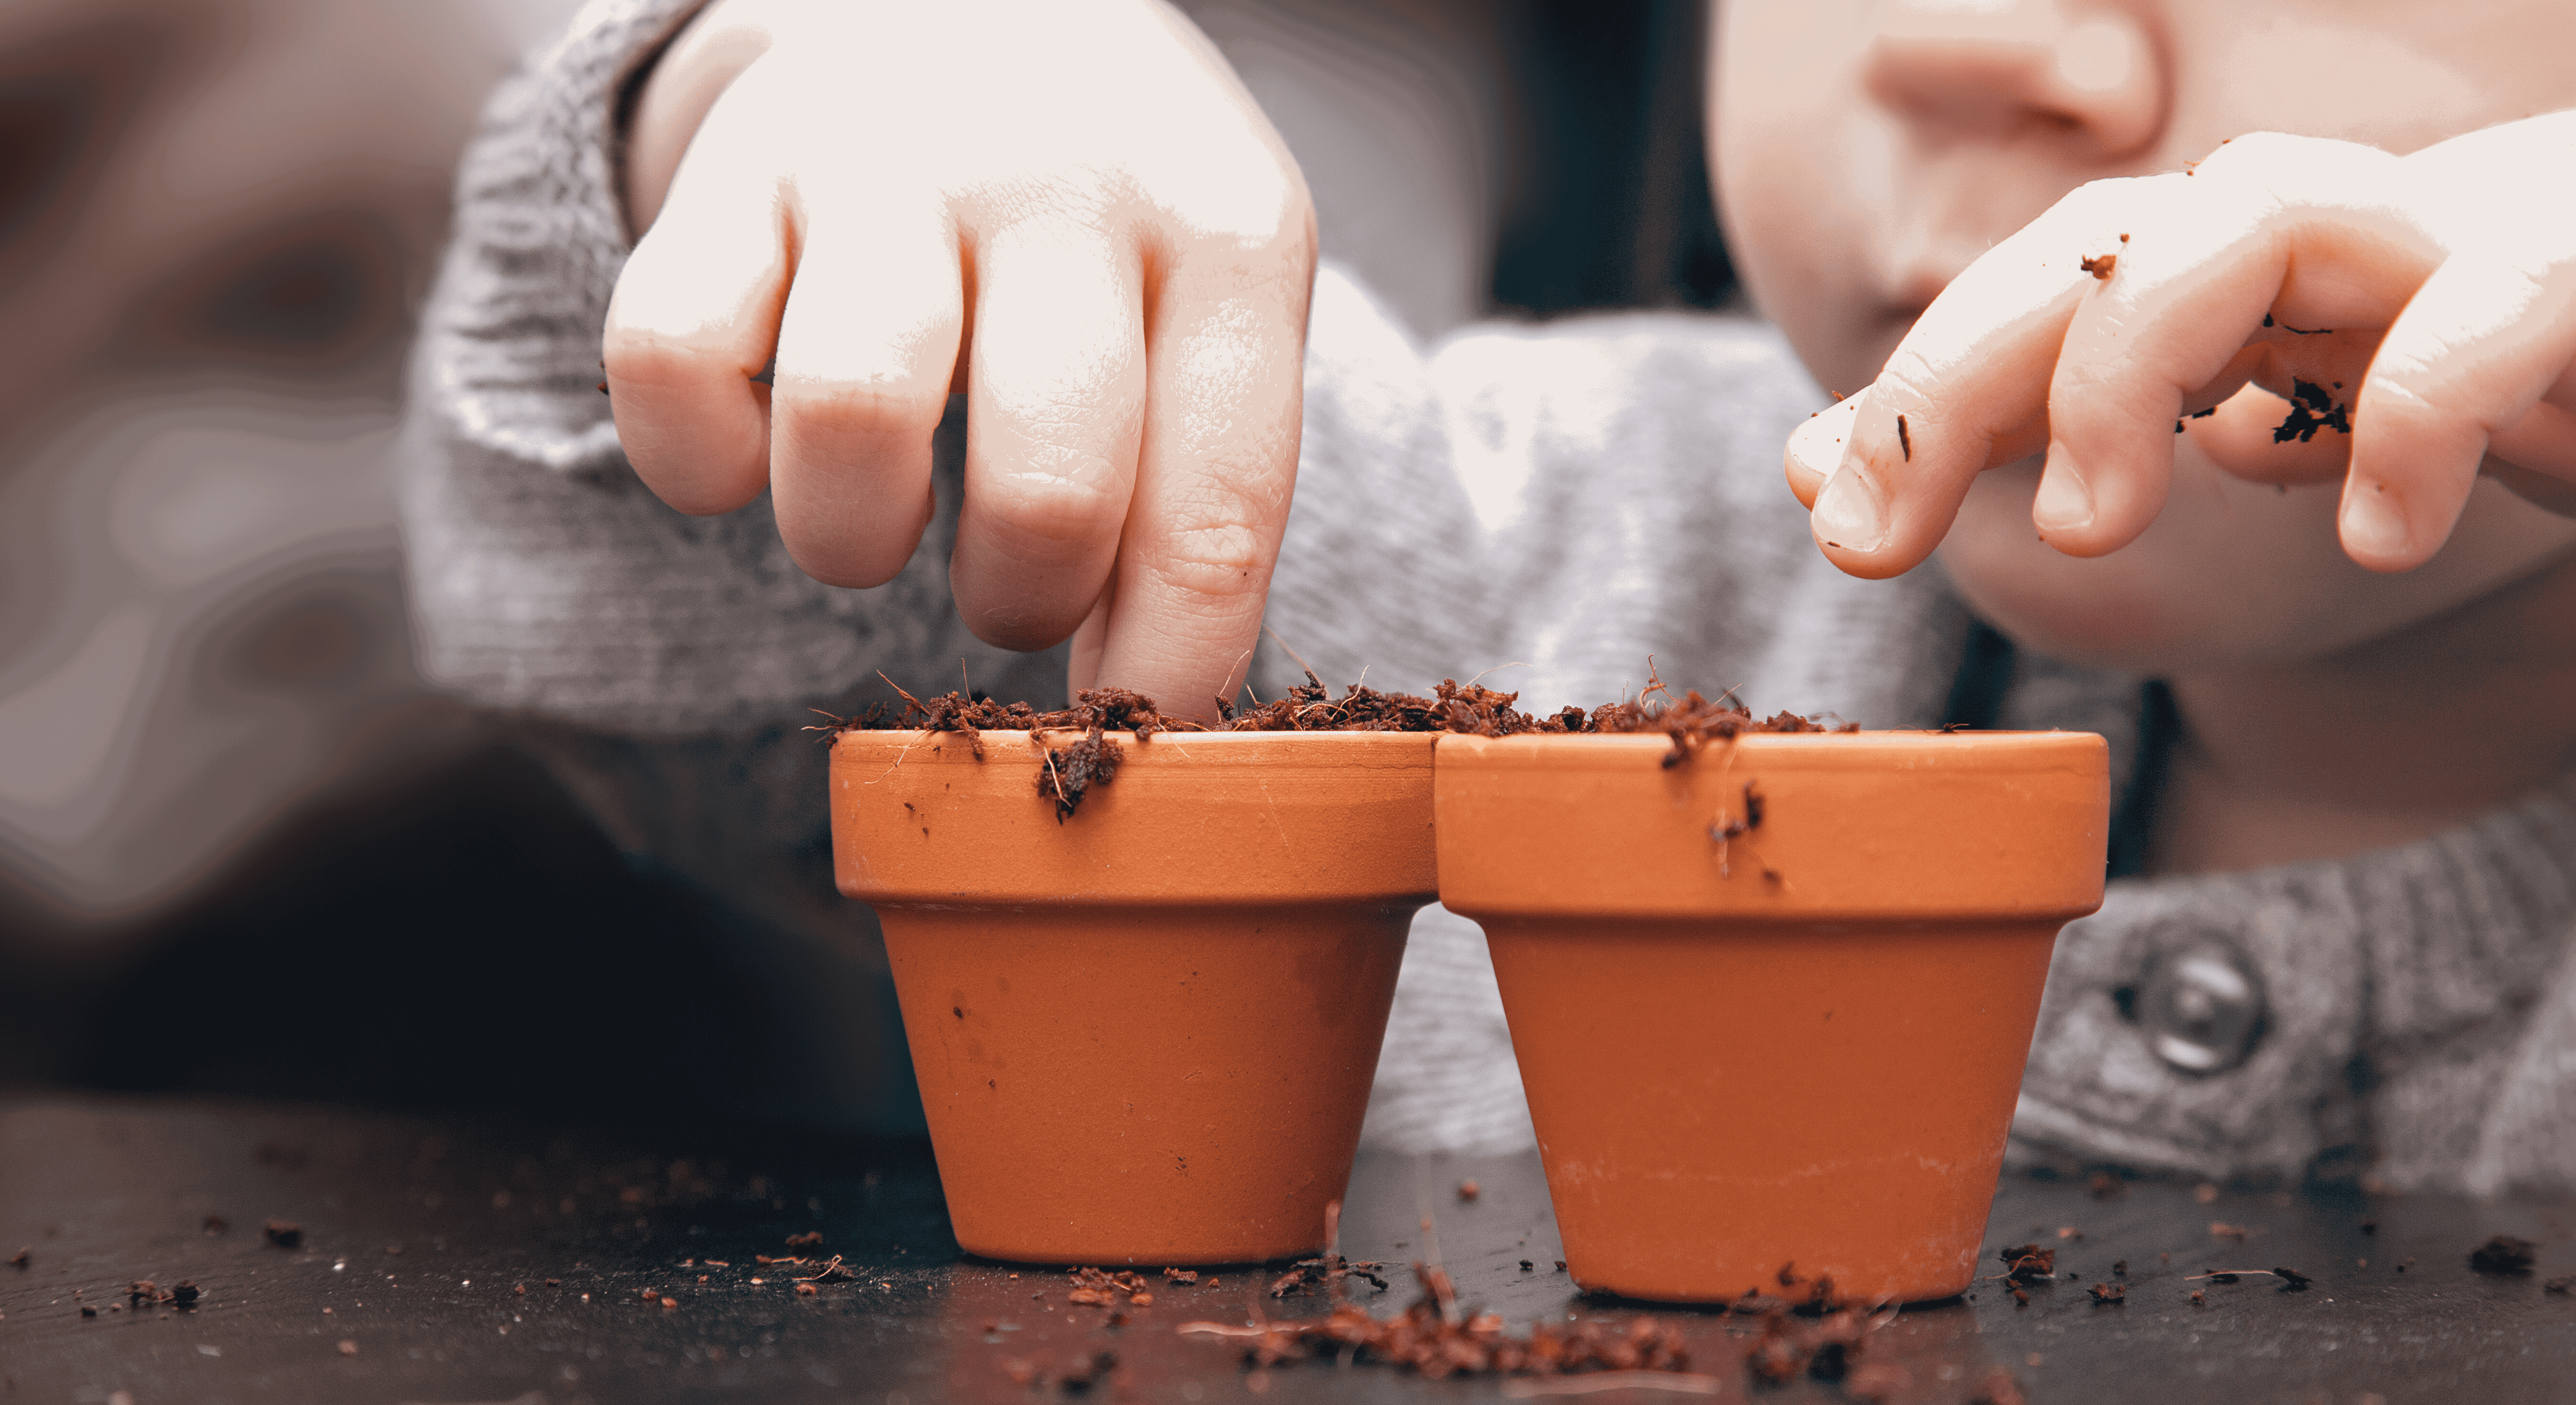 Soil Lab: Why Testing Soil?